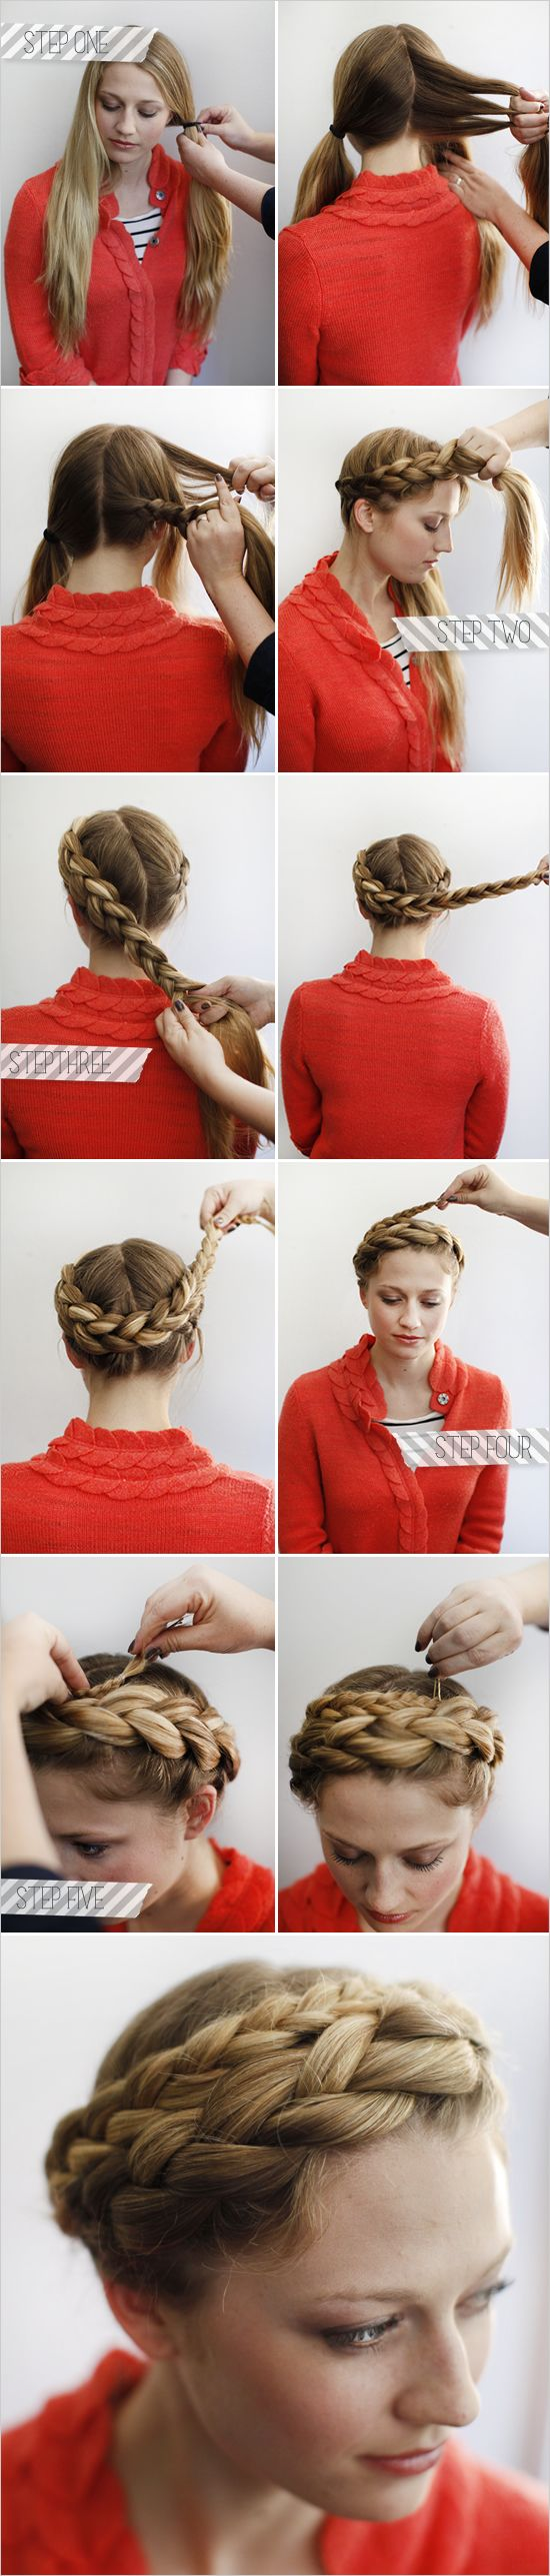 how to: halo braid step by step